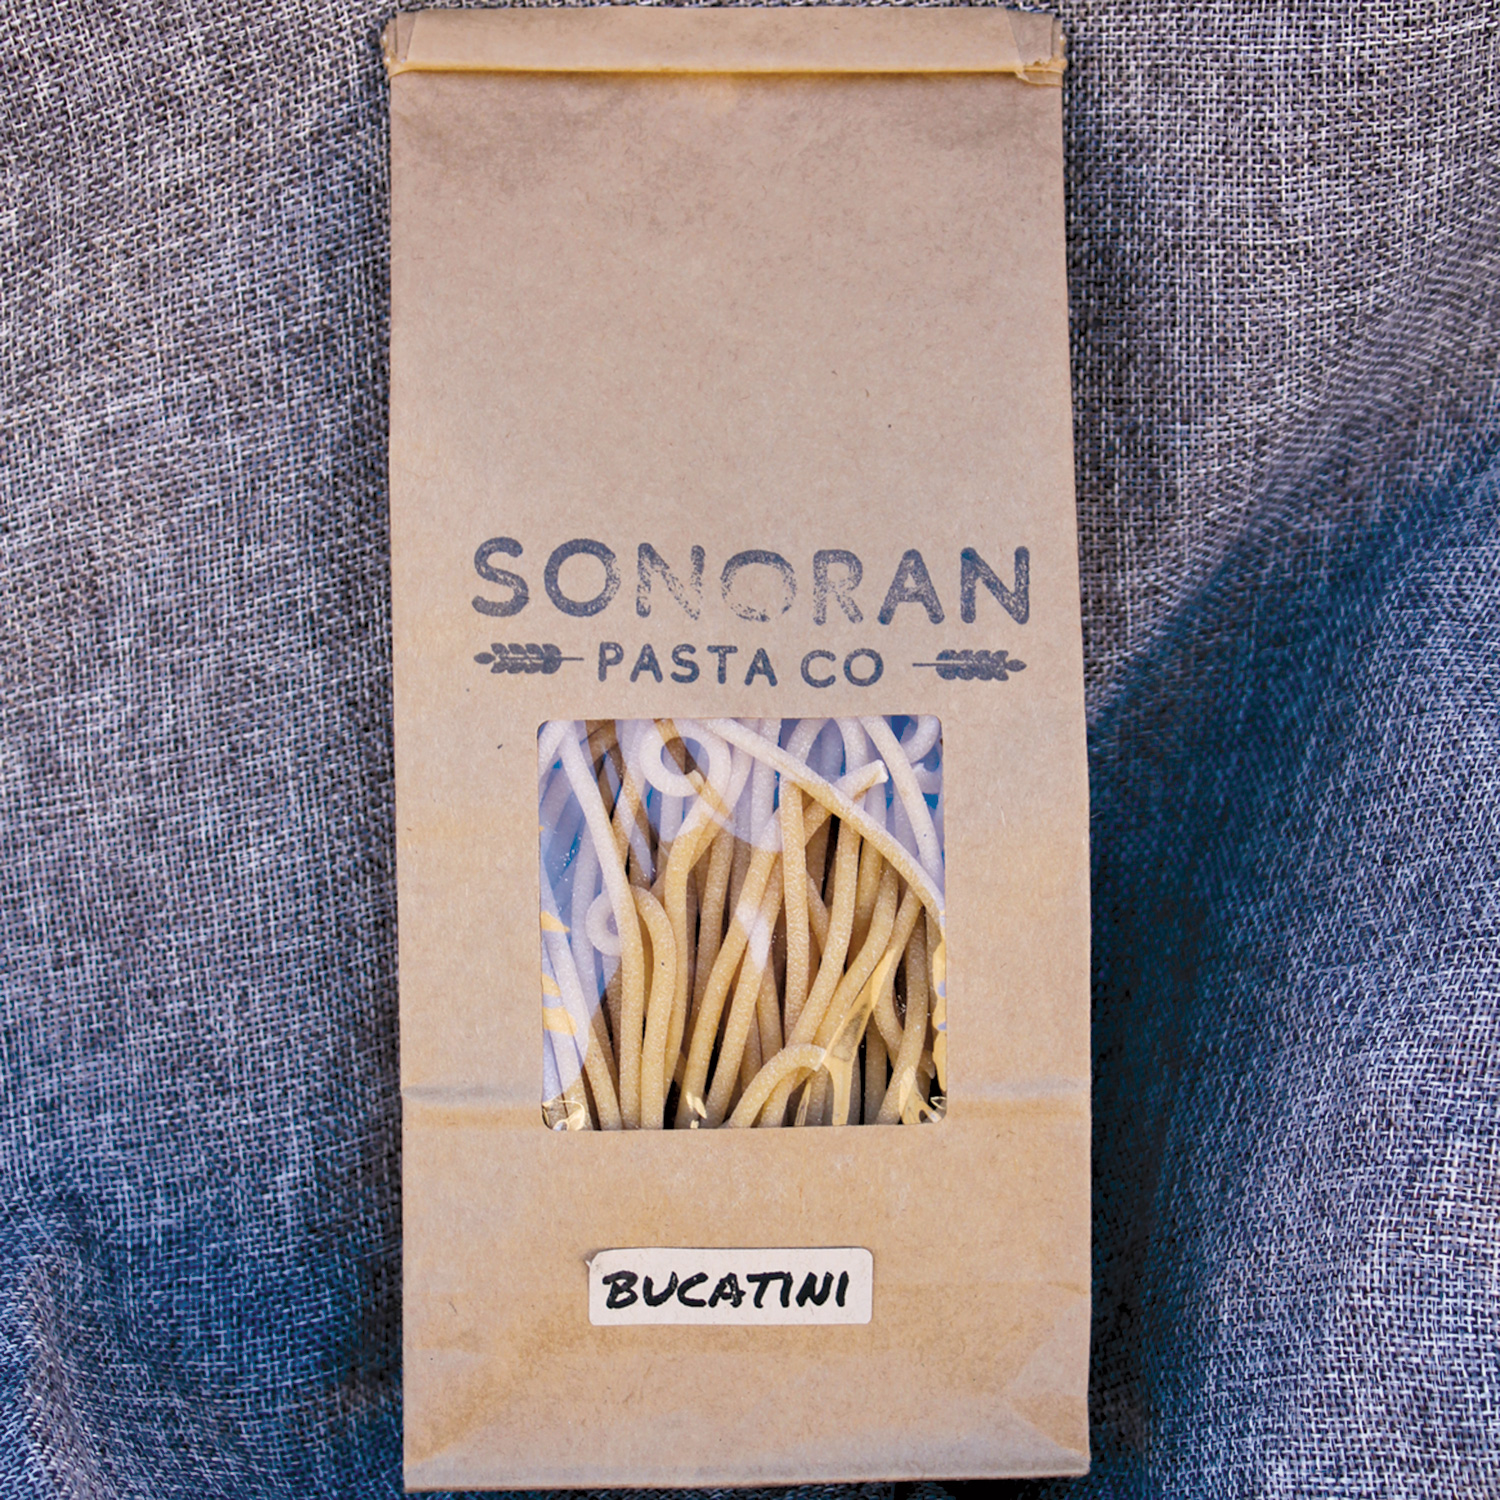 Photo courtesy Sonoran Pasta Co.